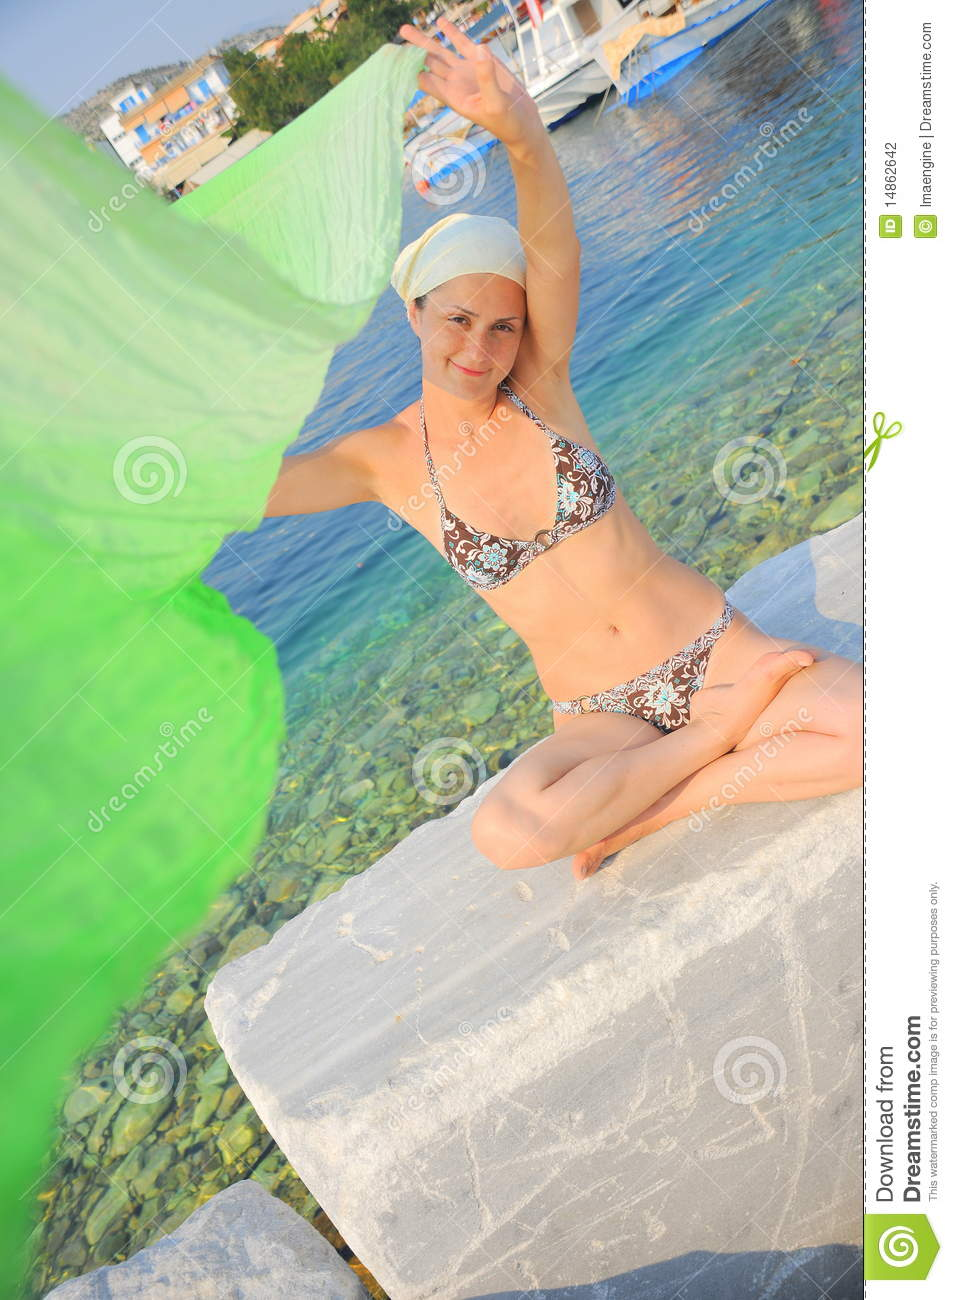 Summer fun and relaxation (woman portrait)